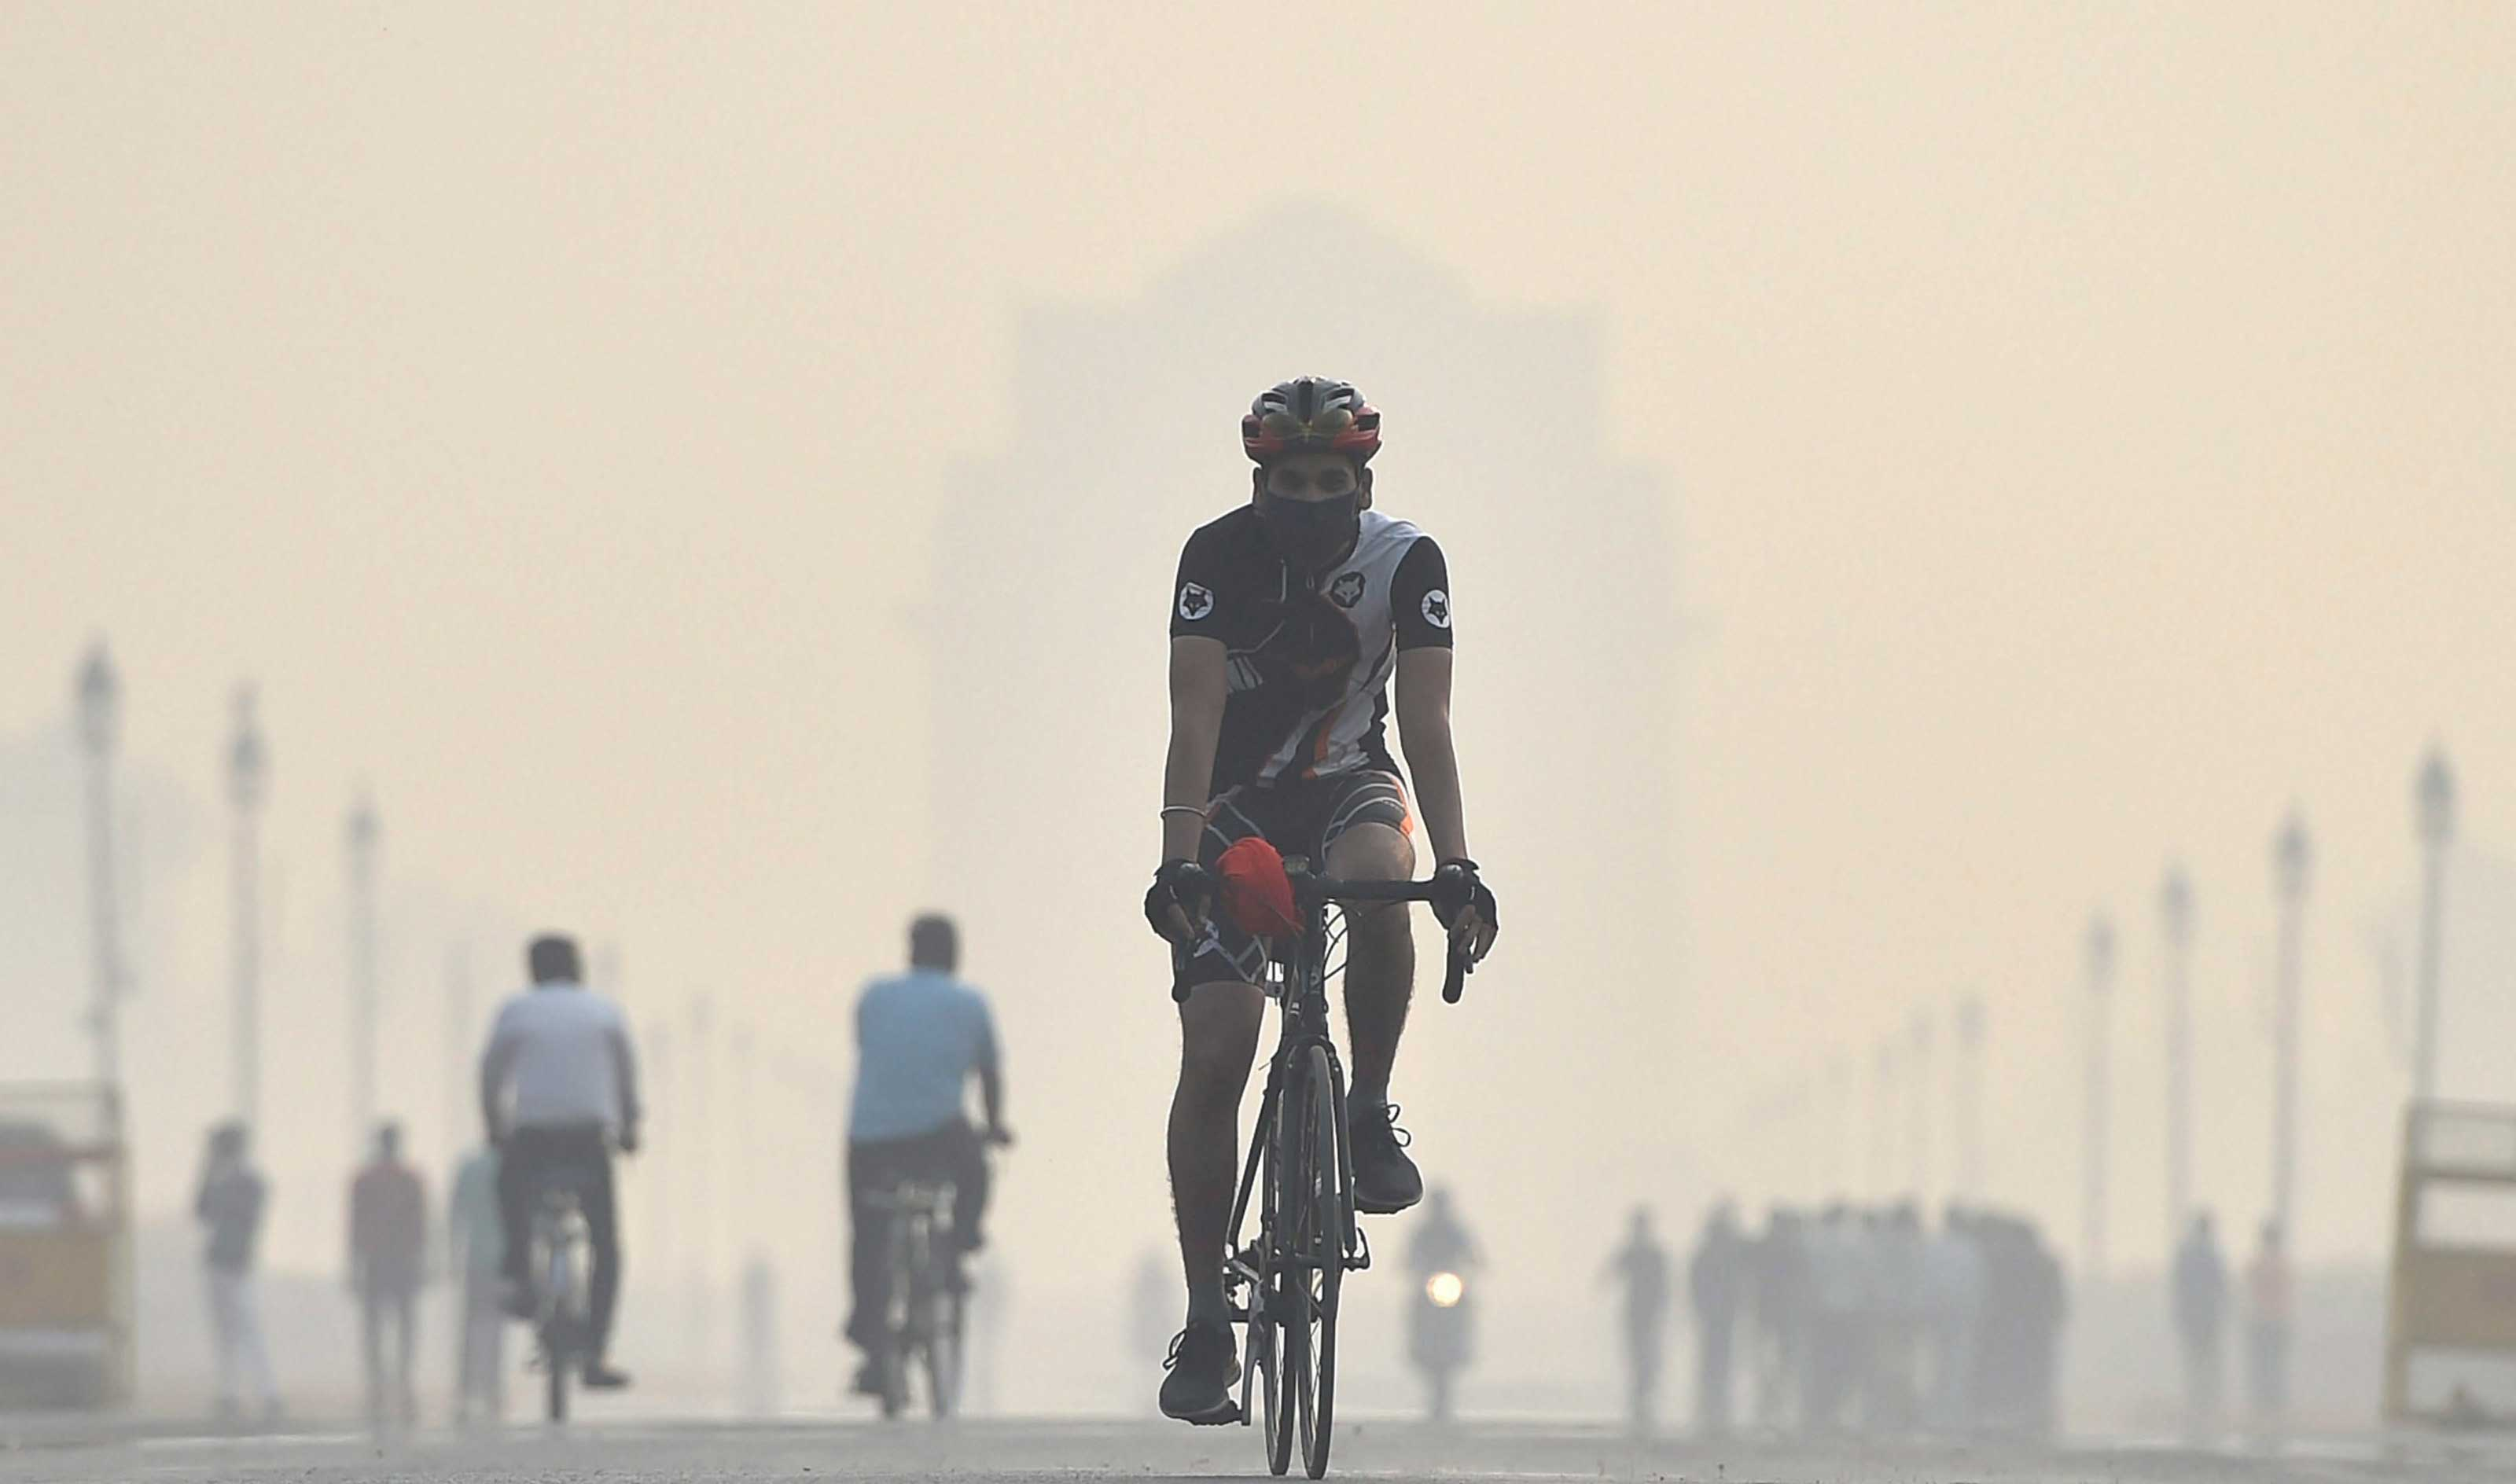 The Greenpeace report placed Lahore in  the 10th spot and New Delhi eleventh in a global list of 4,200 odd cities with toxic air